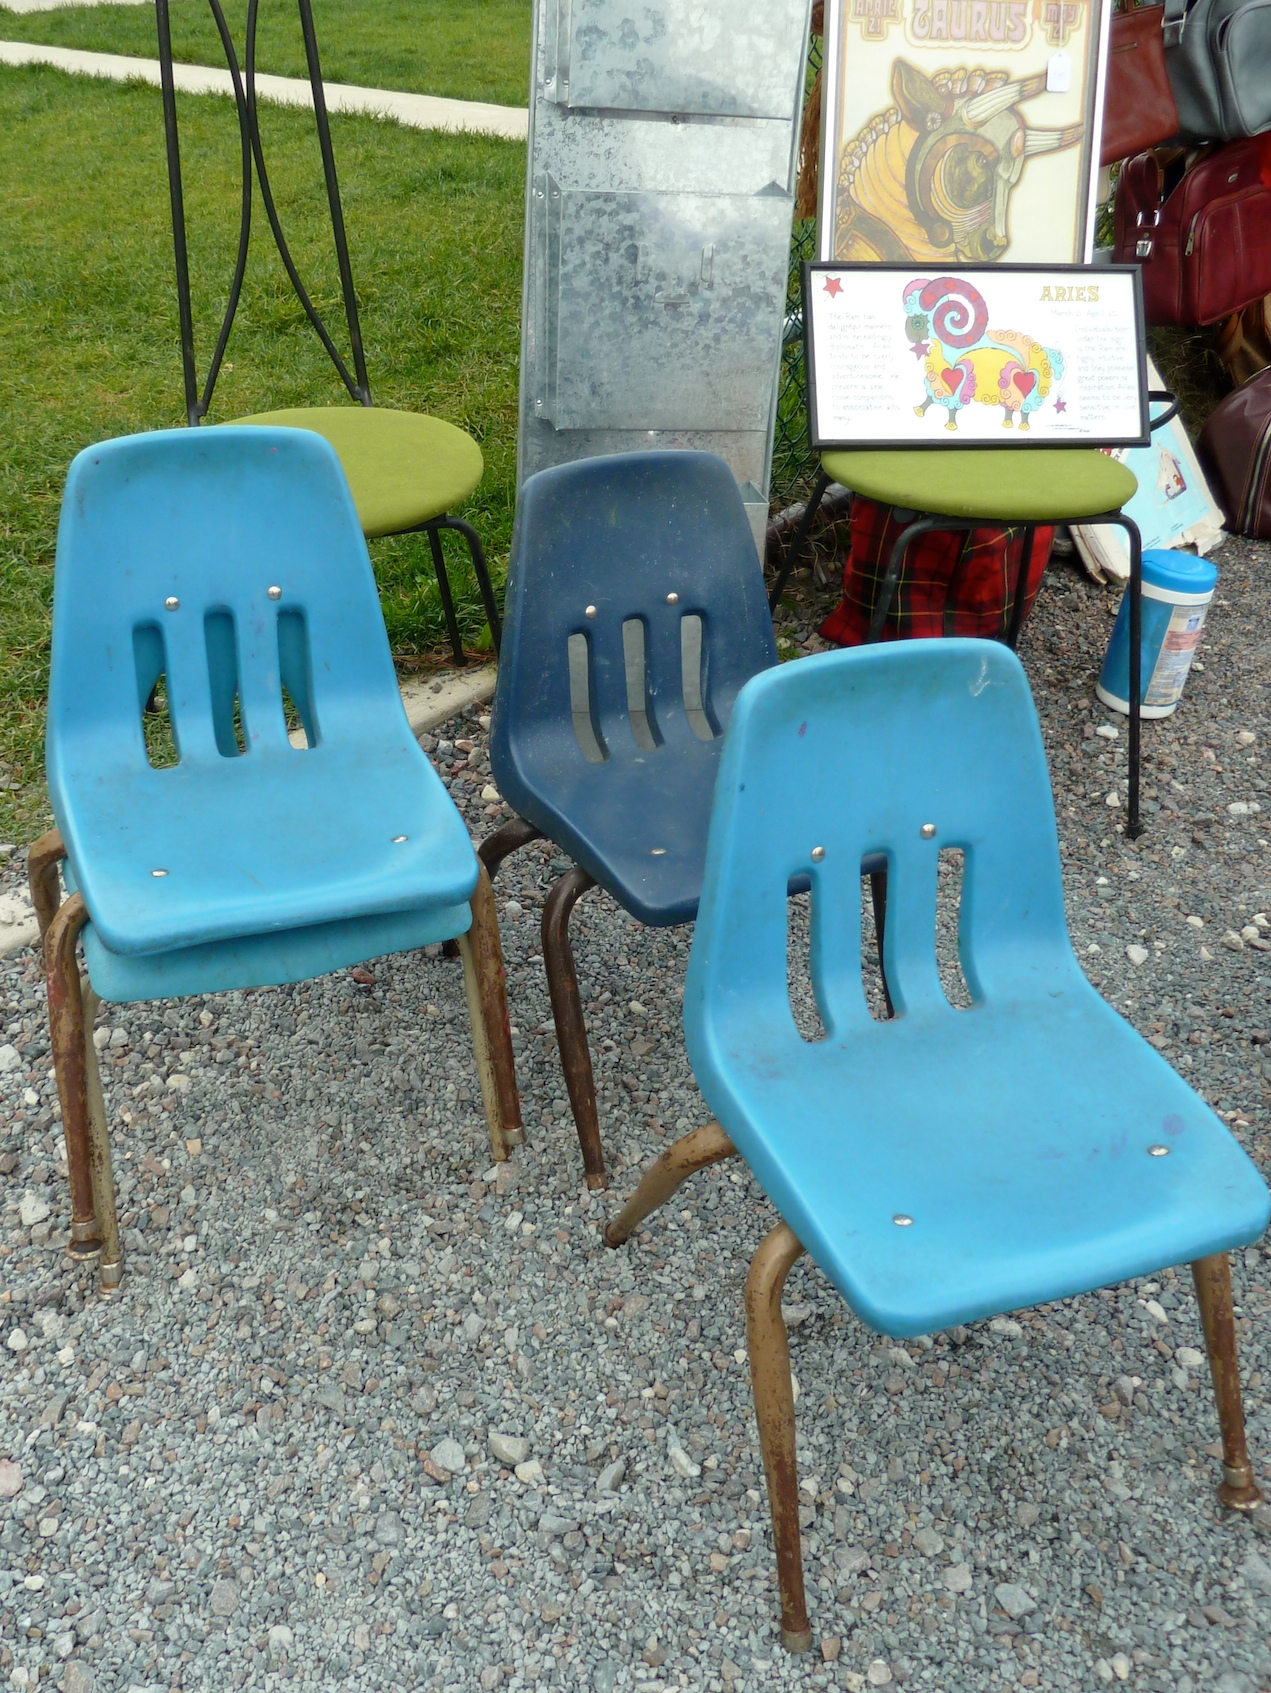 Kids chairs at Brooklyn Flea market